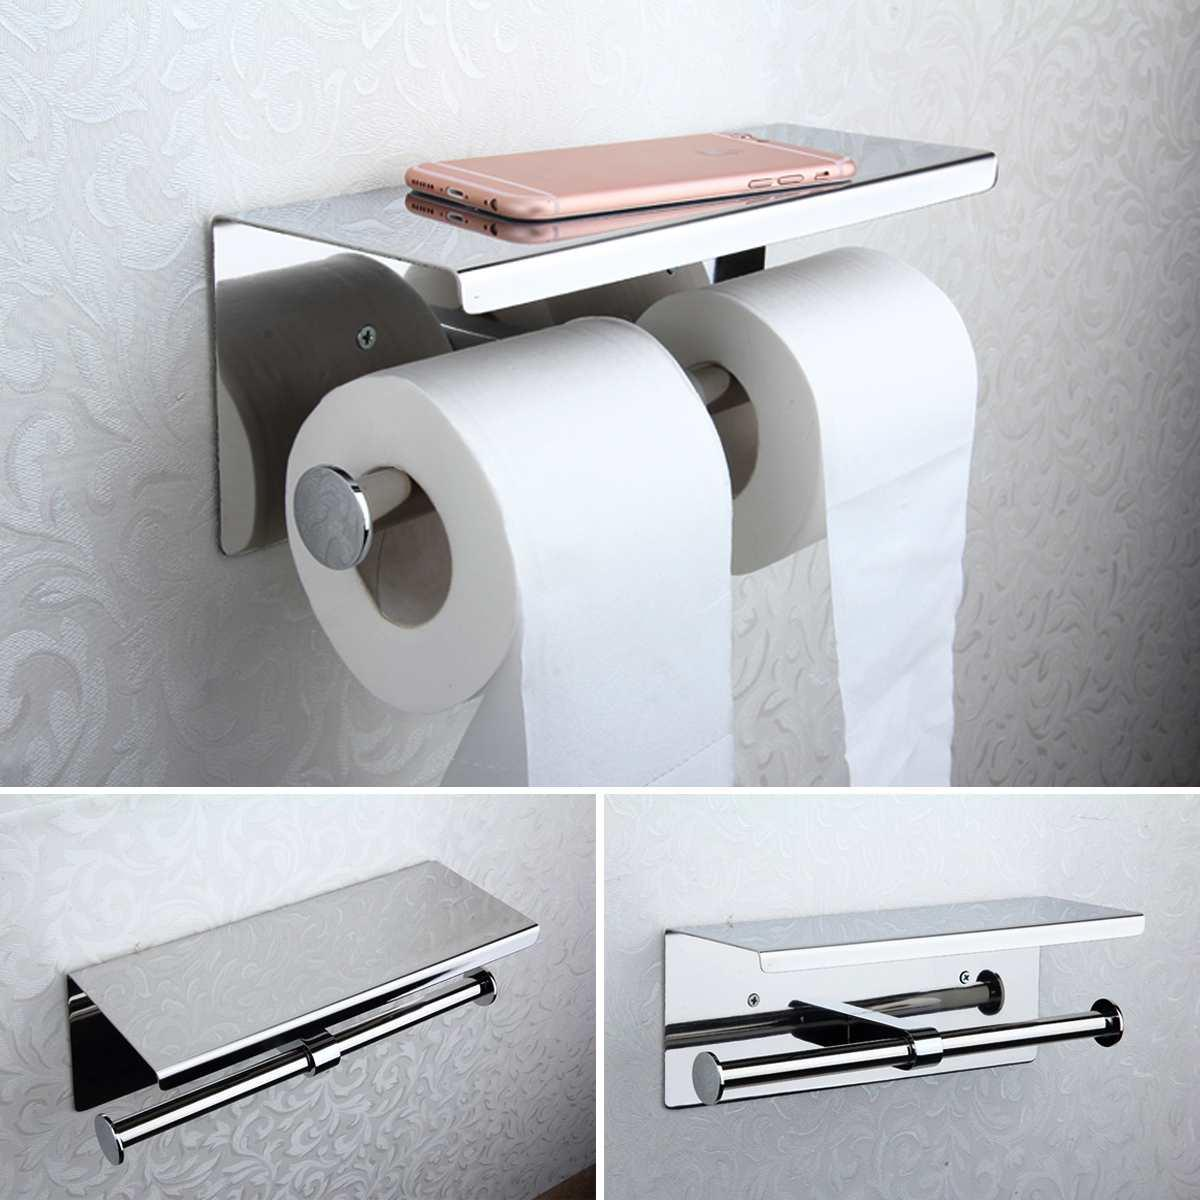 Toilet Paper Holder Wall Mount Tissue Roll Hanger Two Rolls with Mobile Phone Shelf Bath Towel Storage Stainless Steel Holder